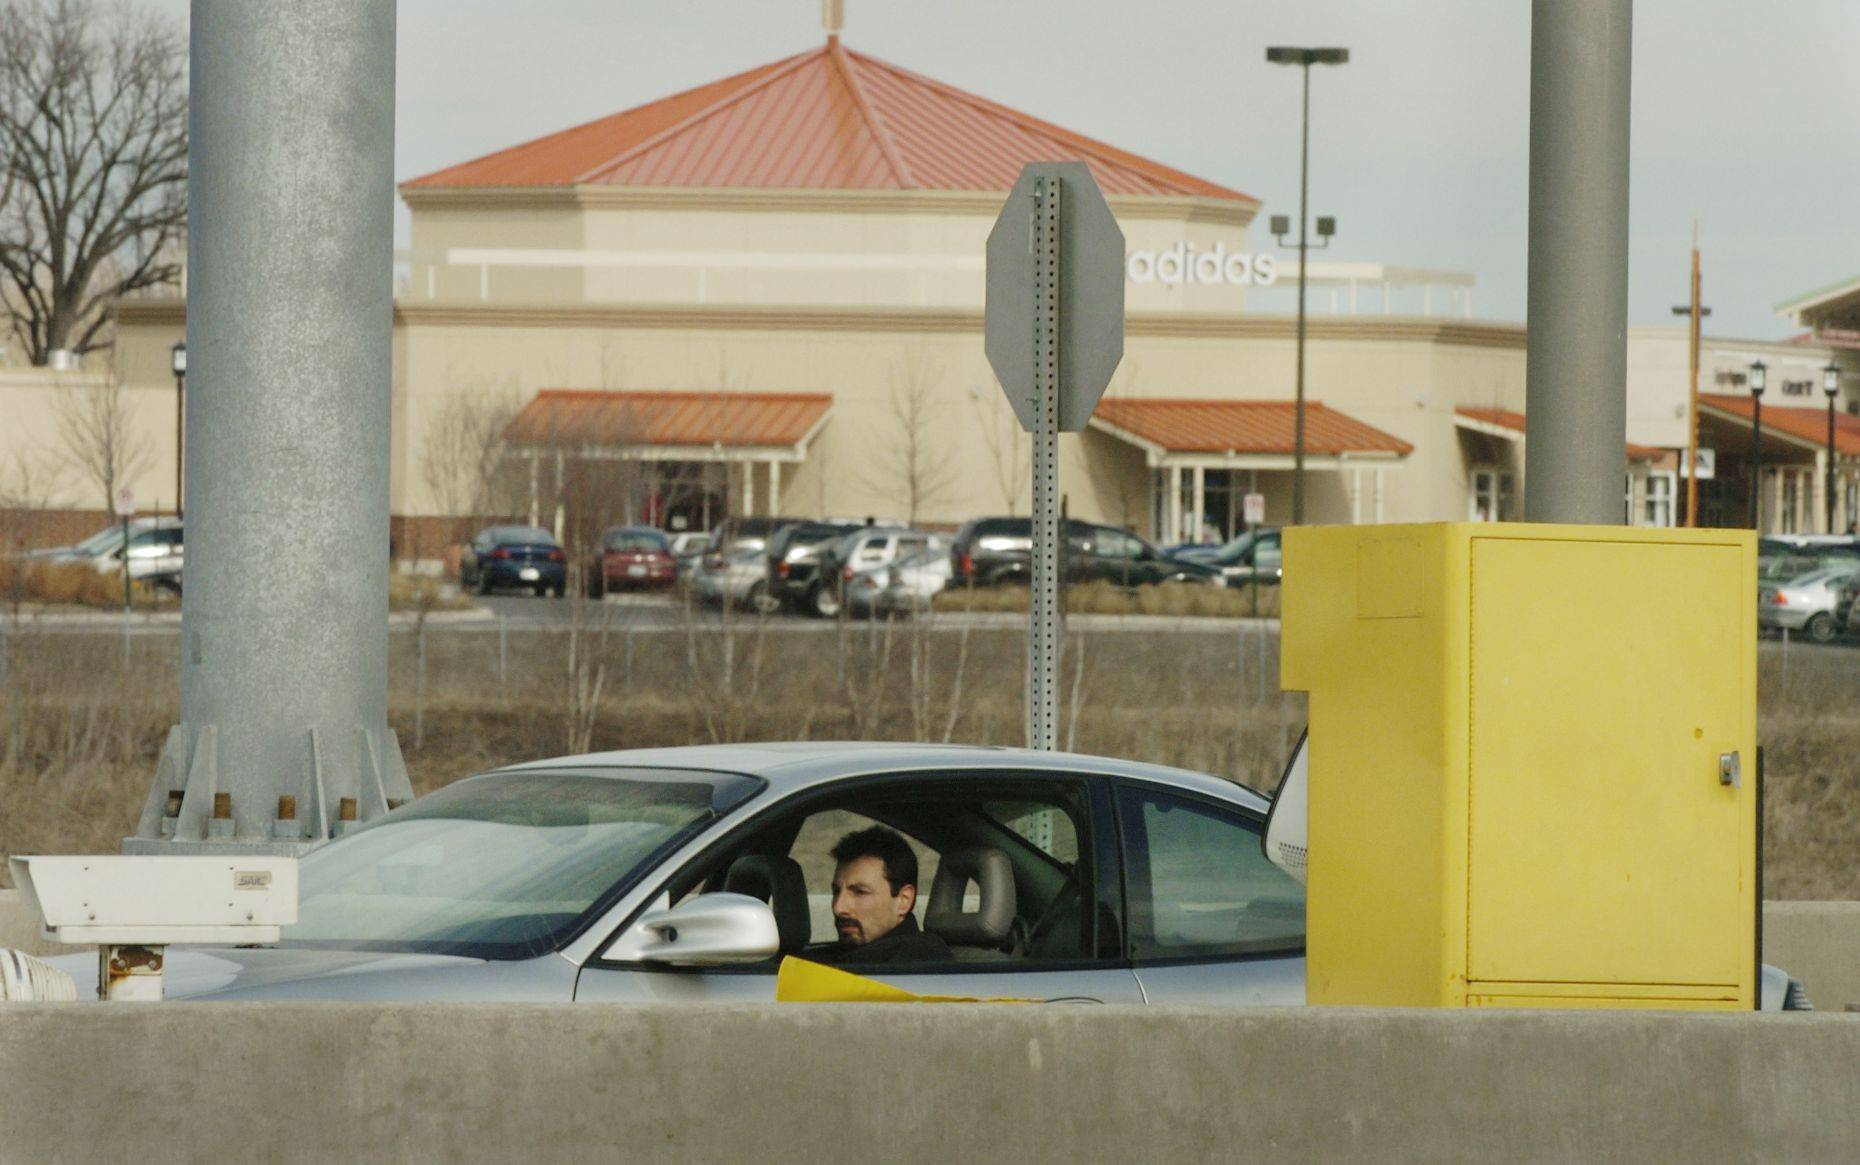 A motorist pays a toll at the northbound Farnsworth ramp from I-88 near the Chicago Premium Outlet Mall.